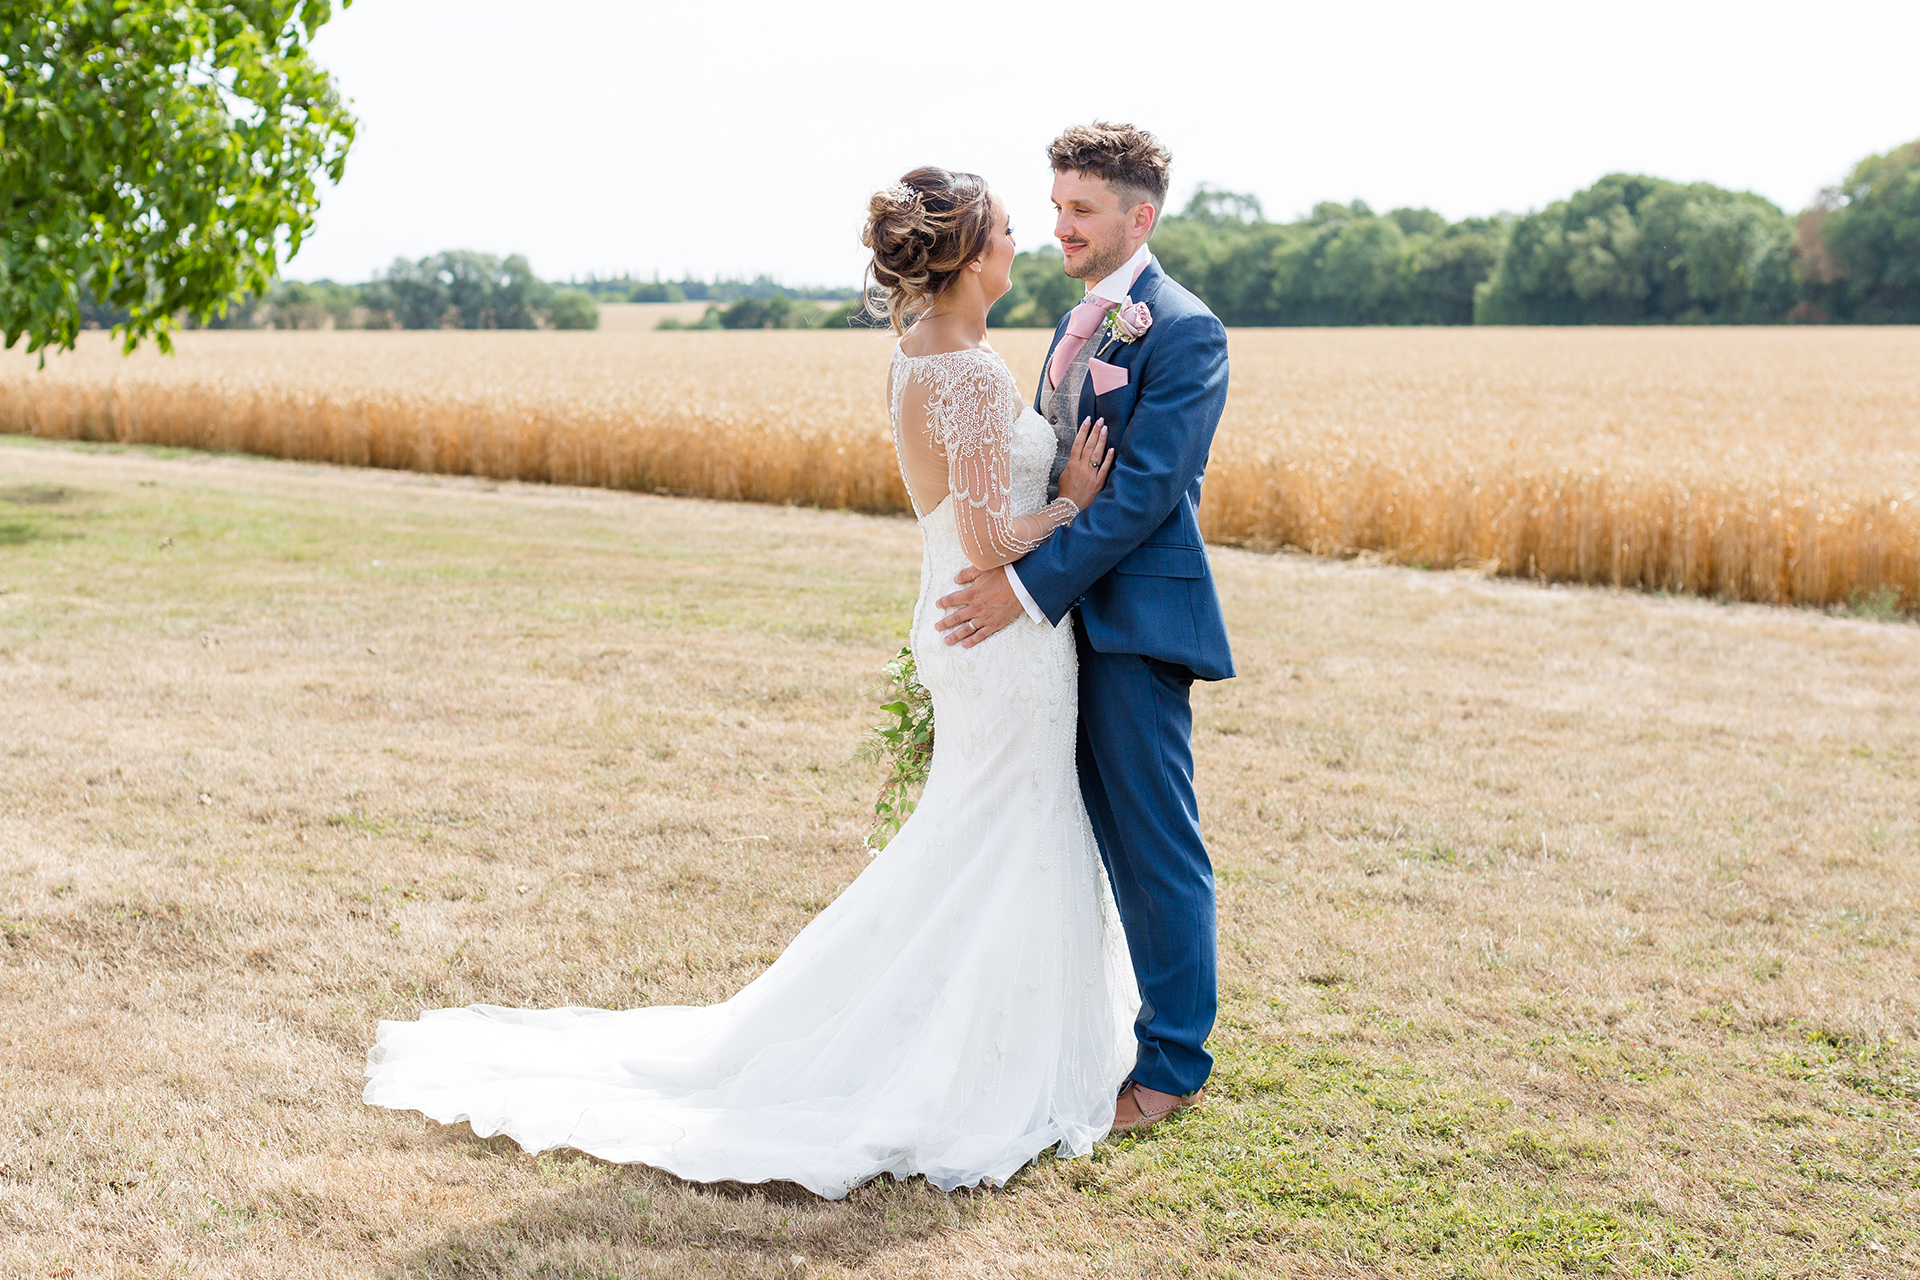 The bride and groom explore the Cambridgeshire countryside that surrounds Bassmead Manor Barns wedding venue